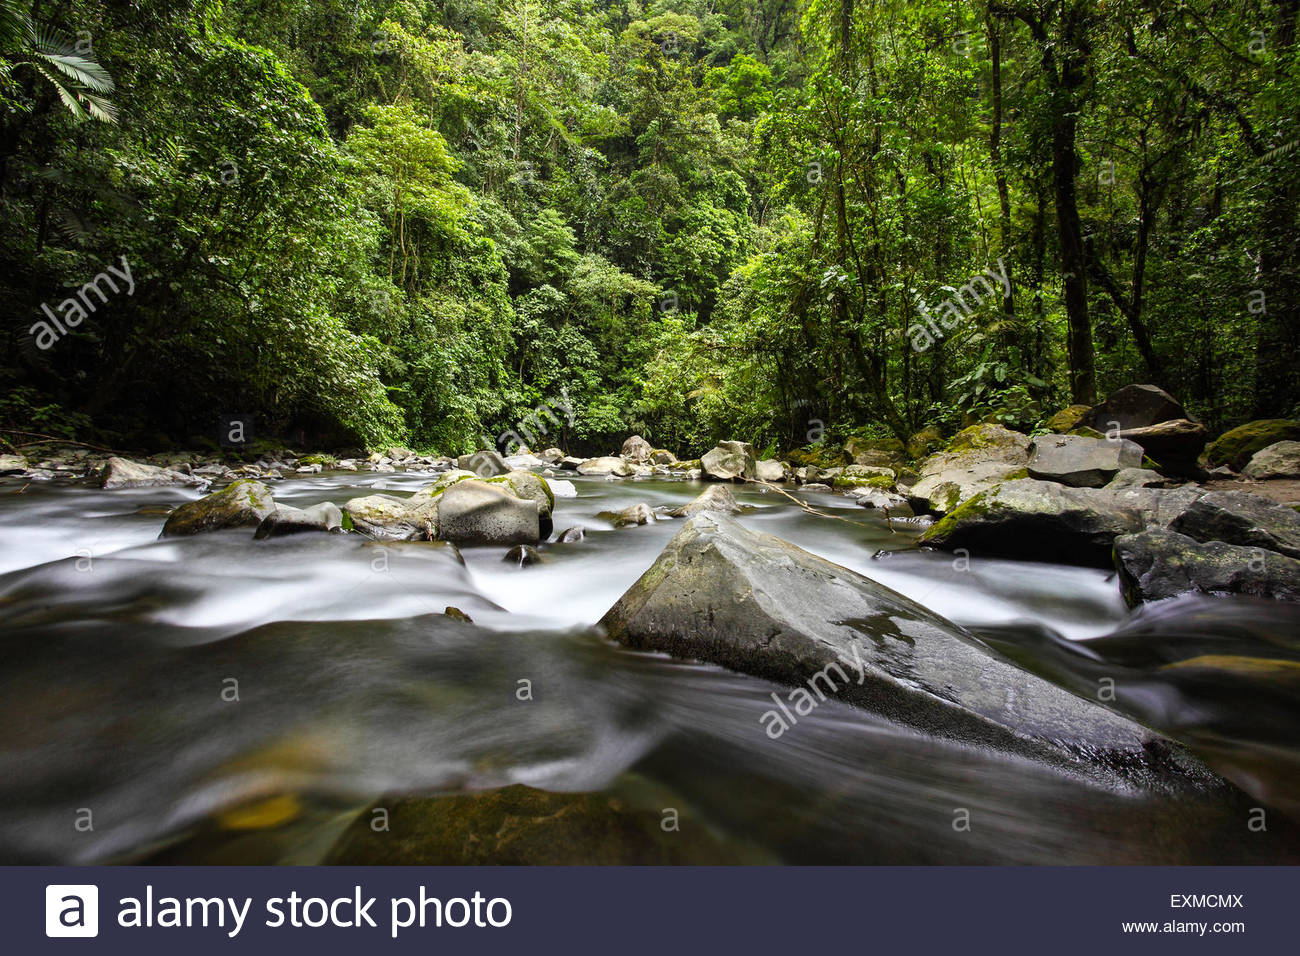 La Fortuna river at La Fortuna, Costa Rica - Stock Image